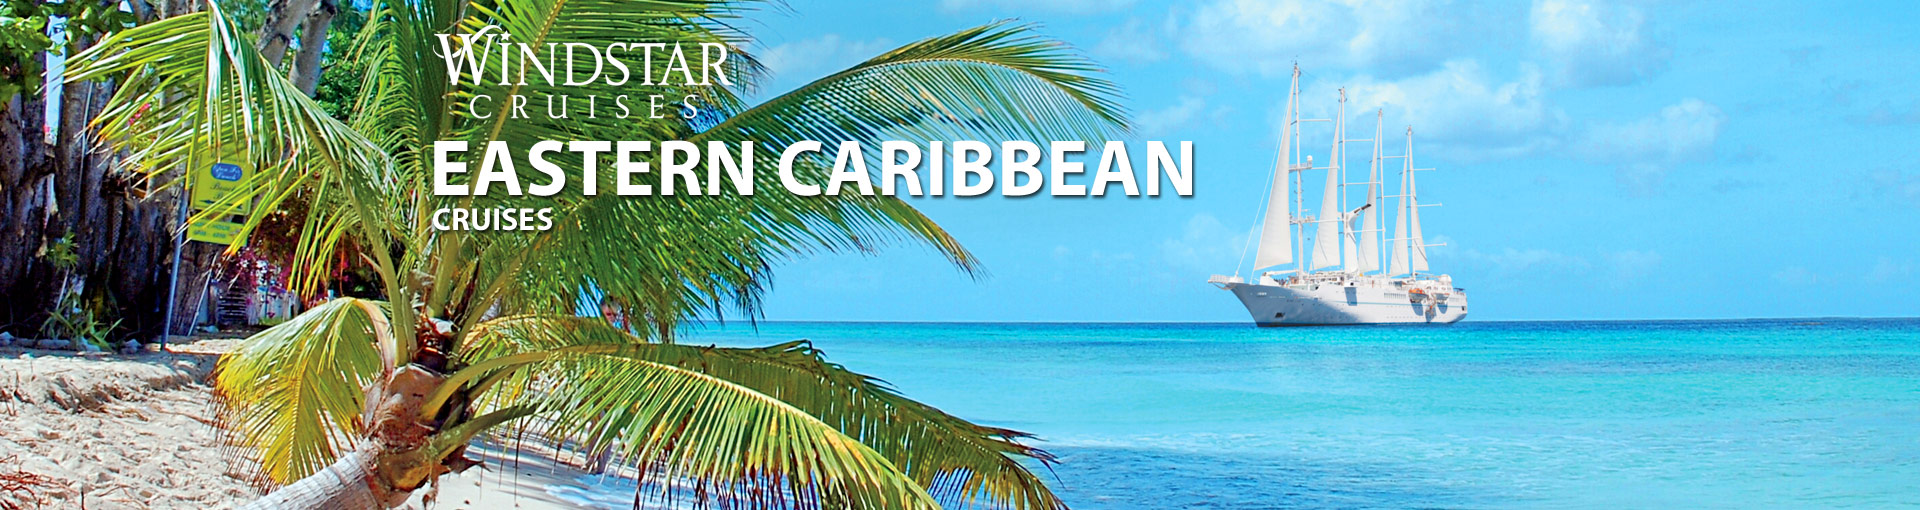 Windstar Cruises Eastern Caribbean